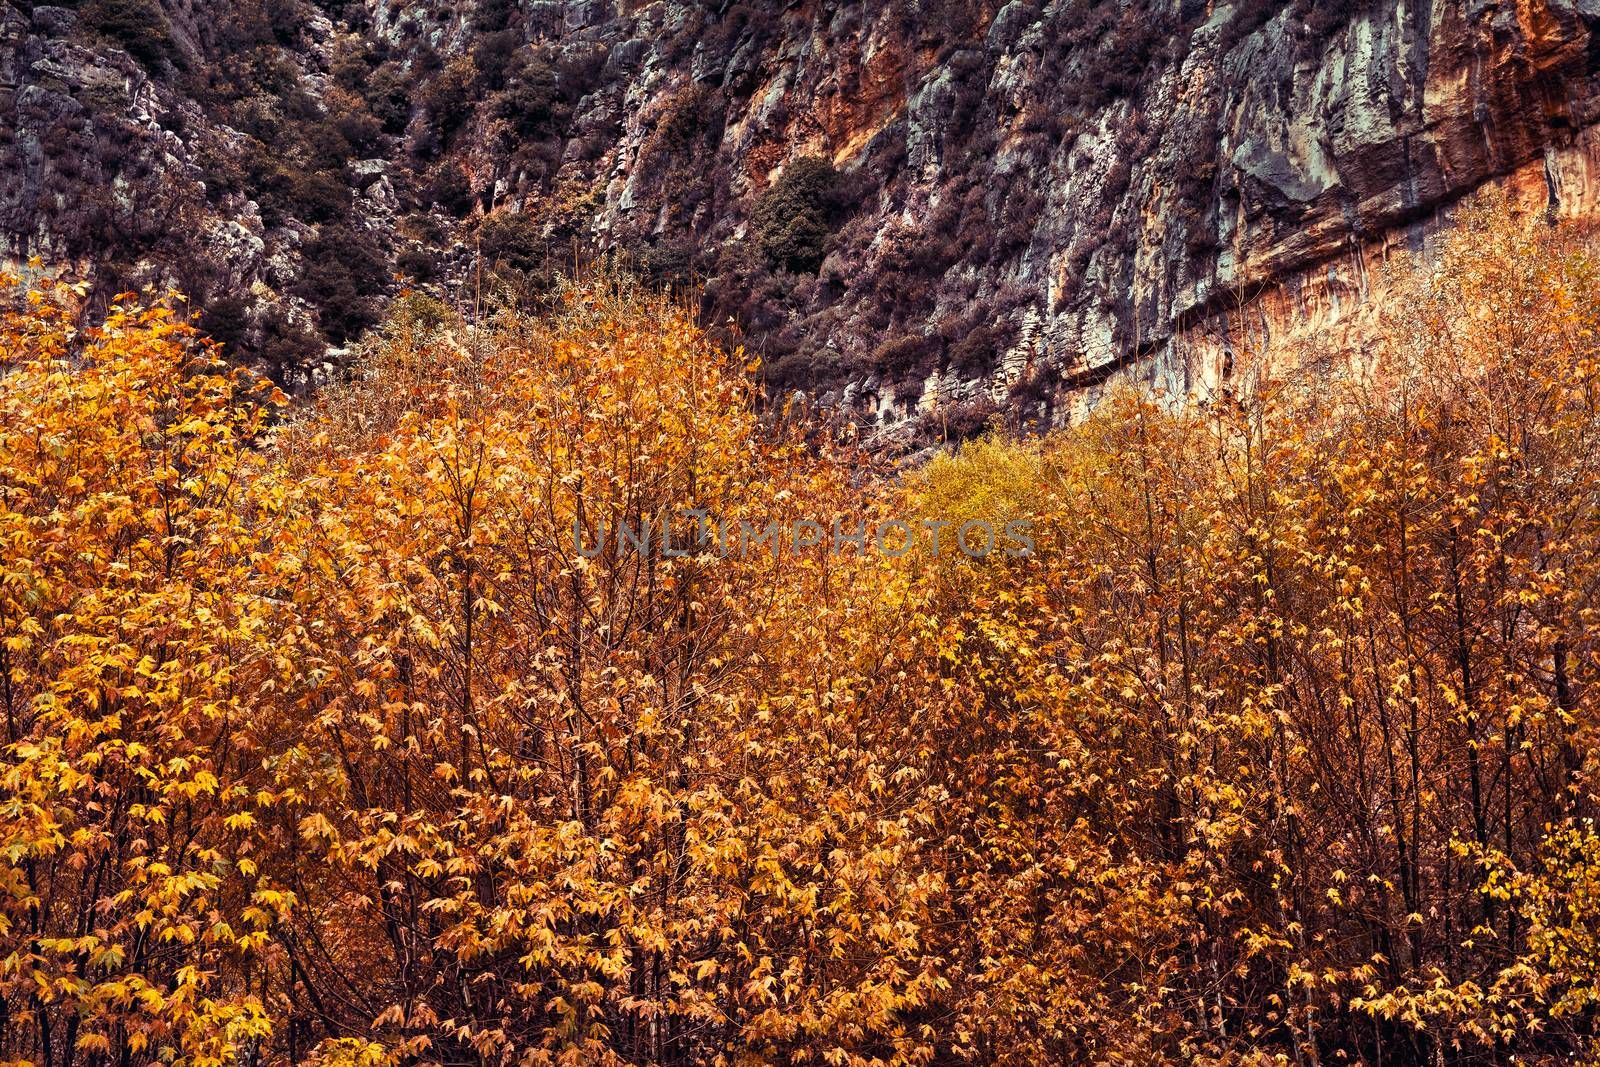 Beauty of autumn, trees with golden foliage under great mountain, abstract natural background, change of a seasons concept